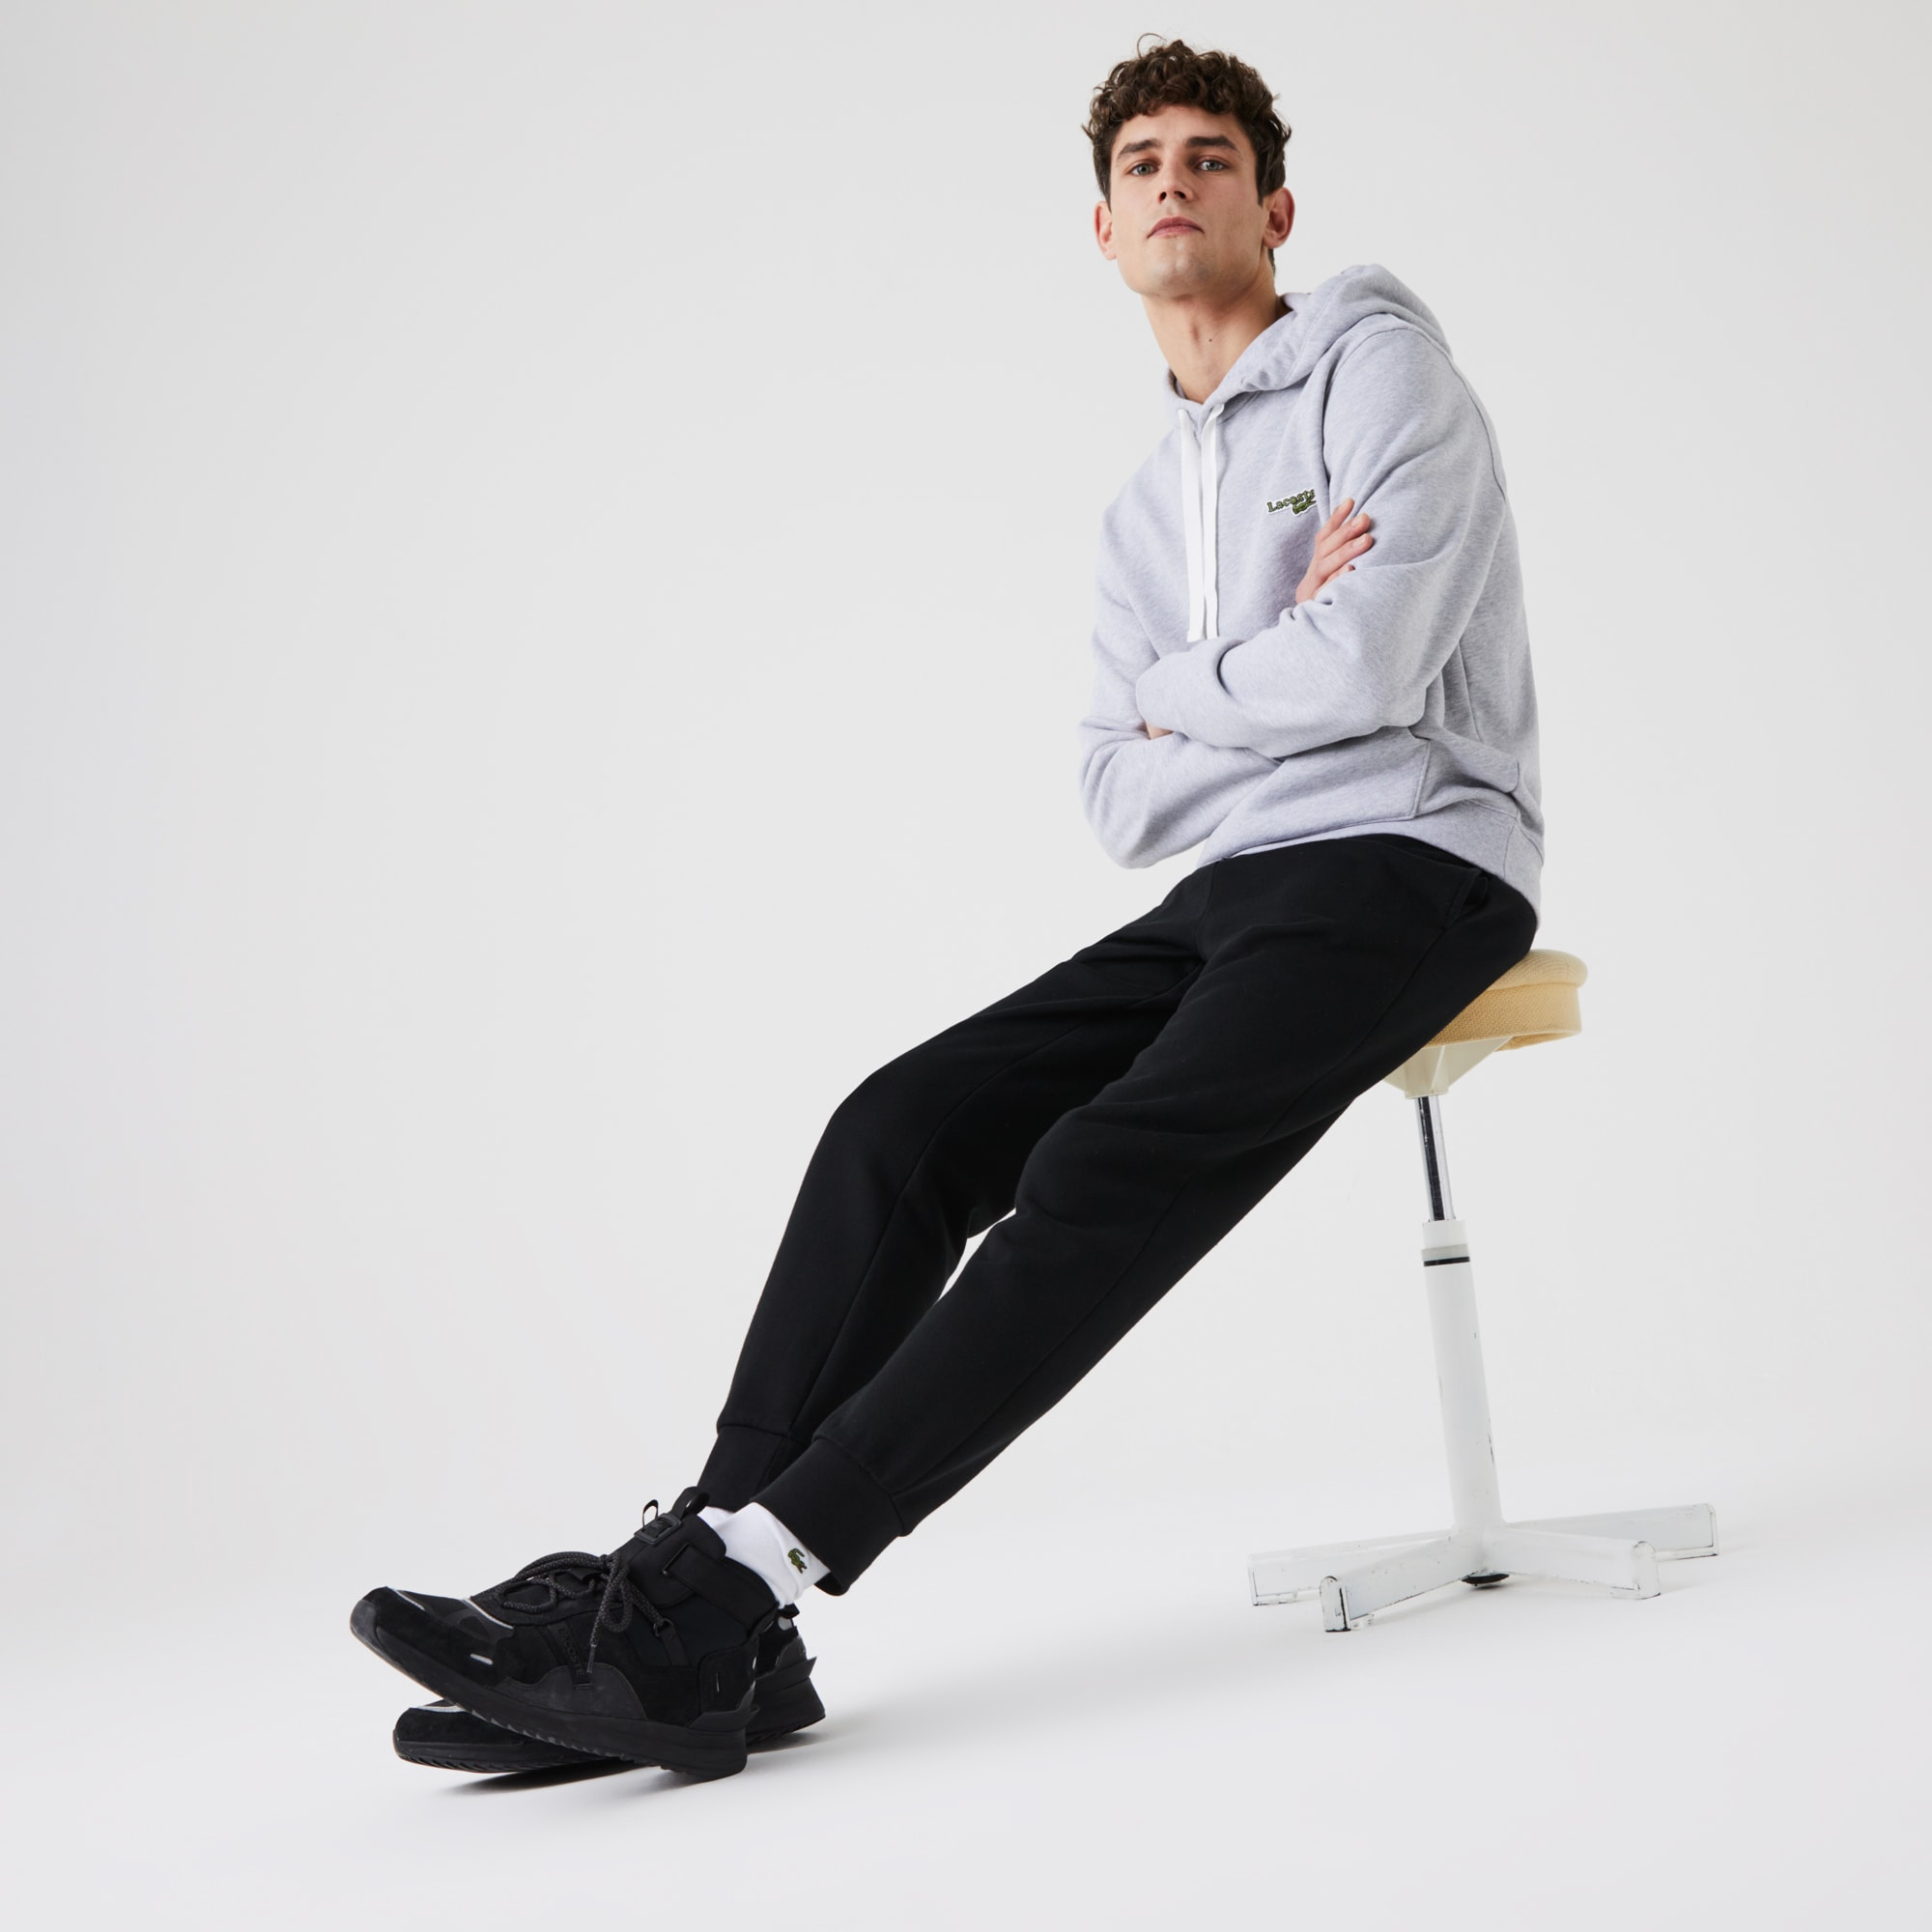 Men's Lacoste SPORT Cotton Fleece Tennis Sweatpants